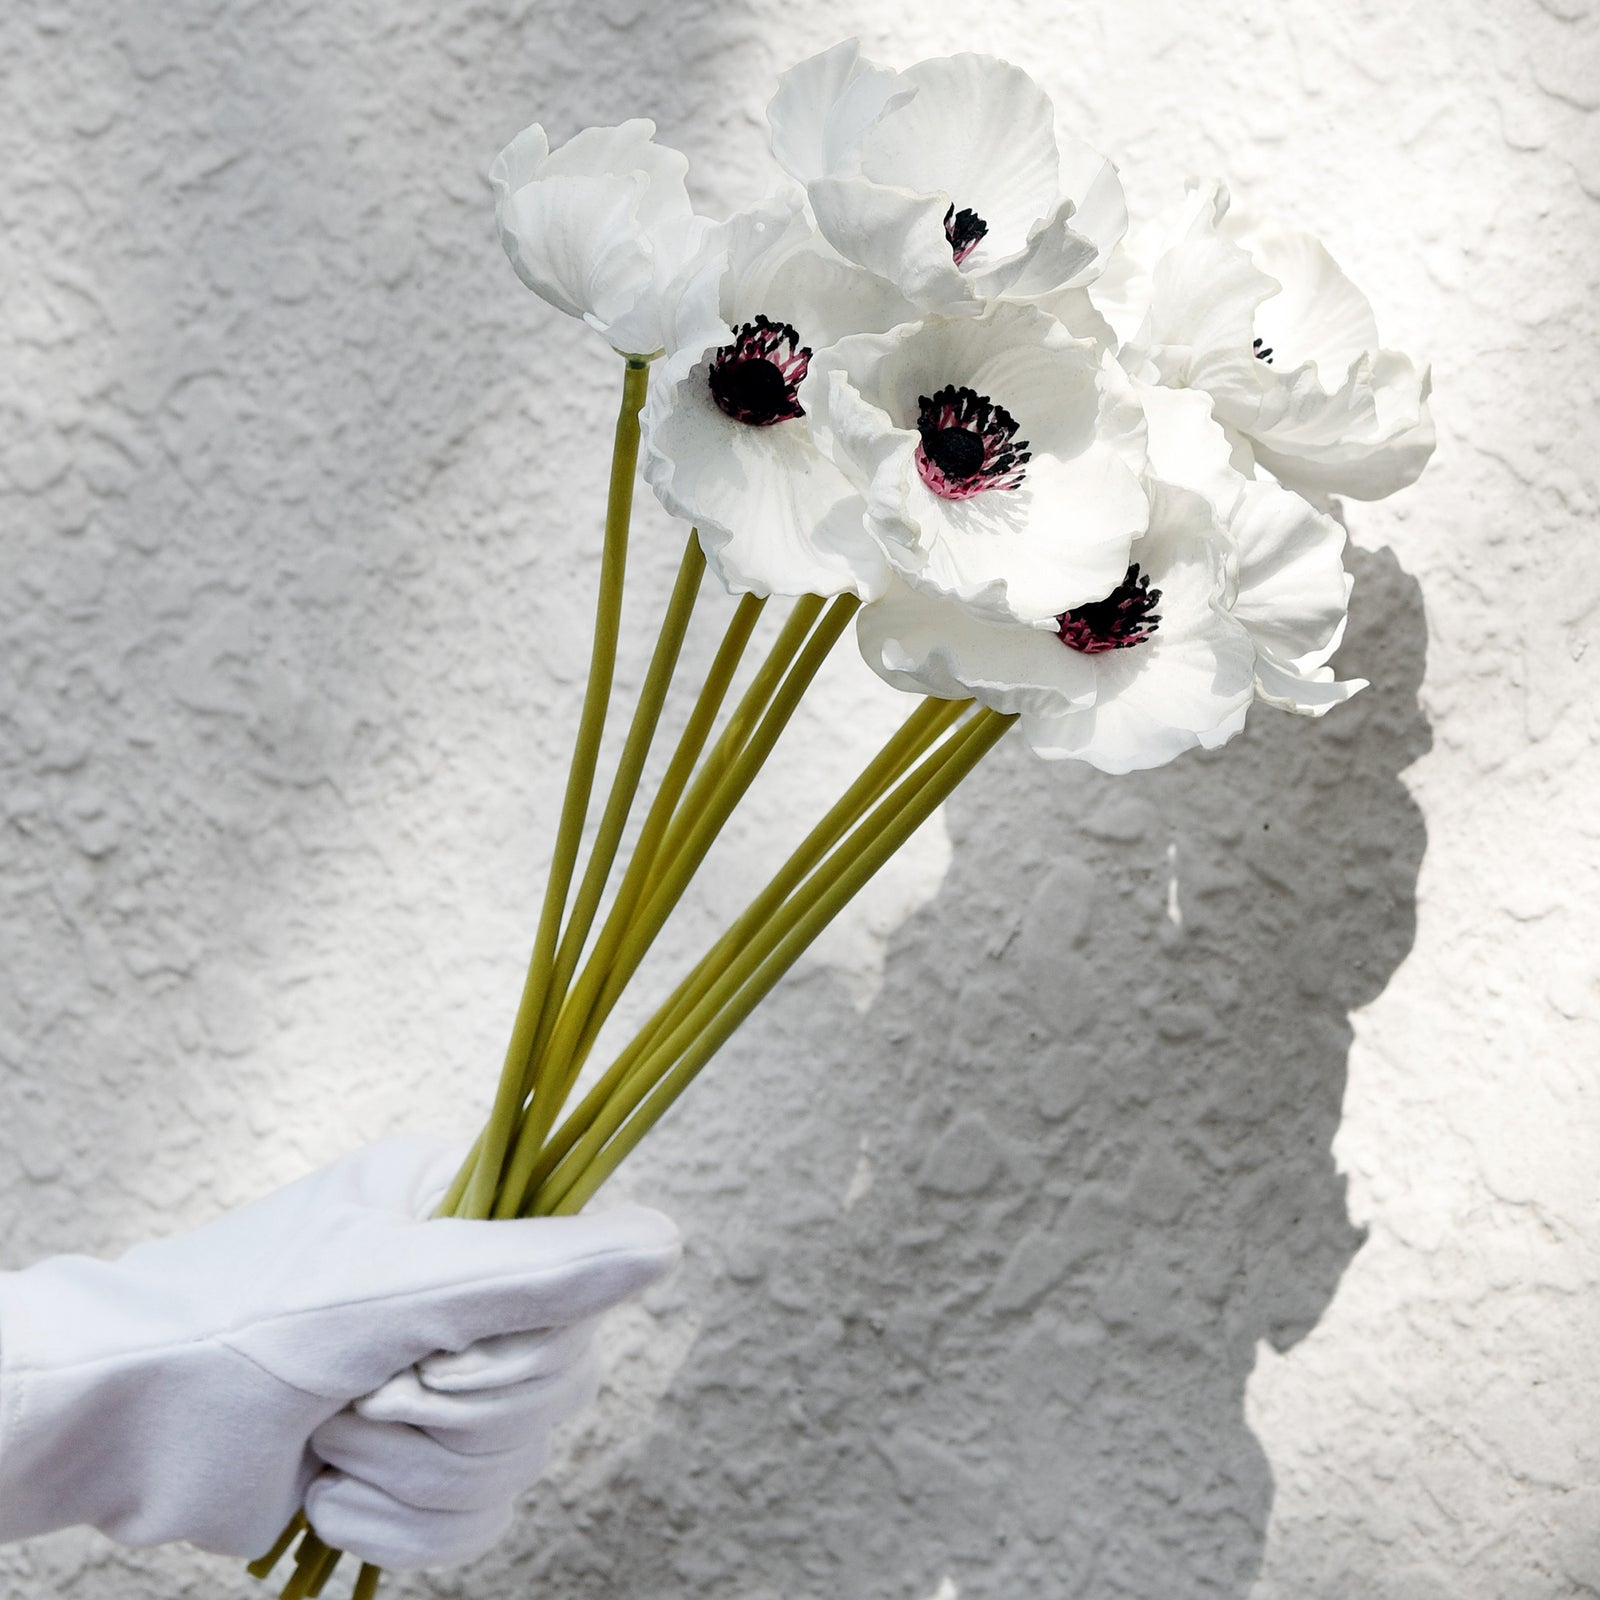 FiveSeasonStuff 10 Stems of Real Touch Artificial Poppy Flowers Remembrance Day Decorations (White)